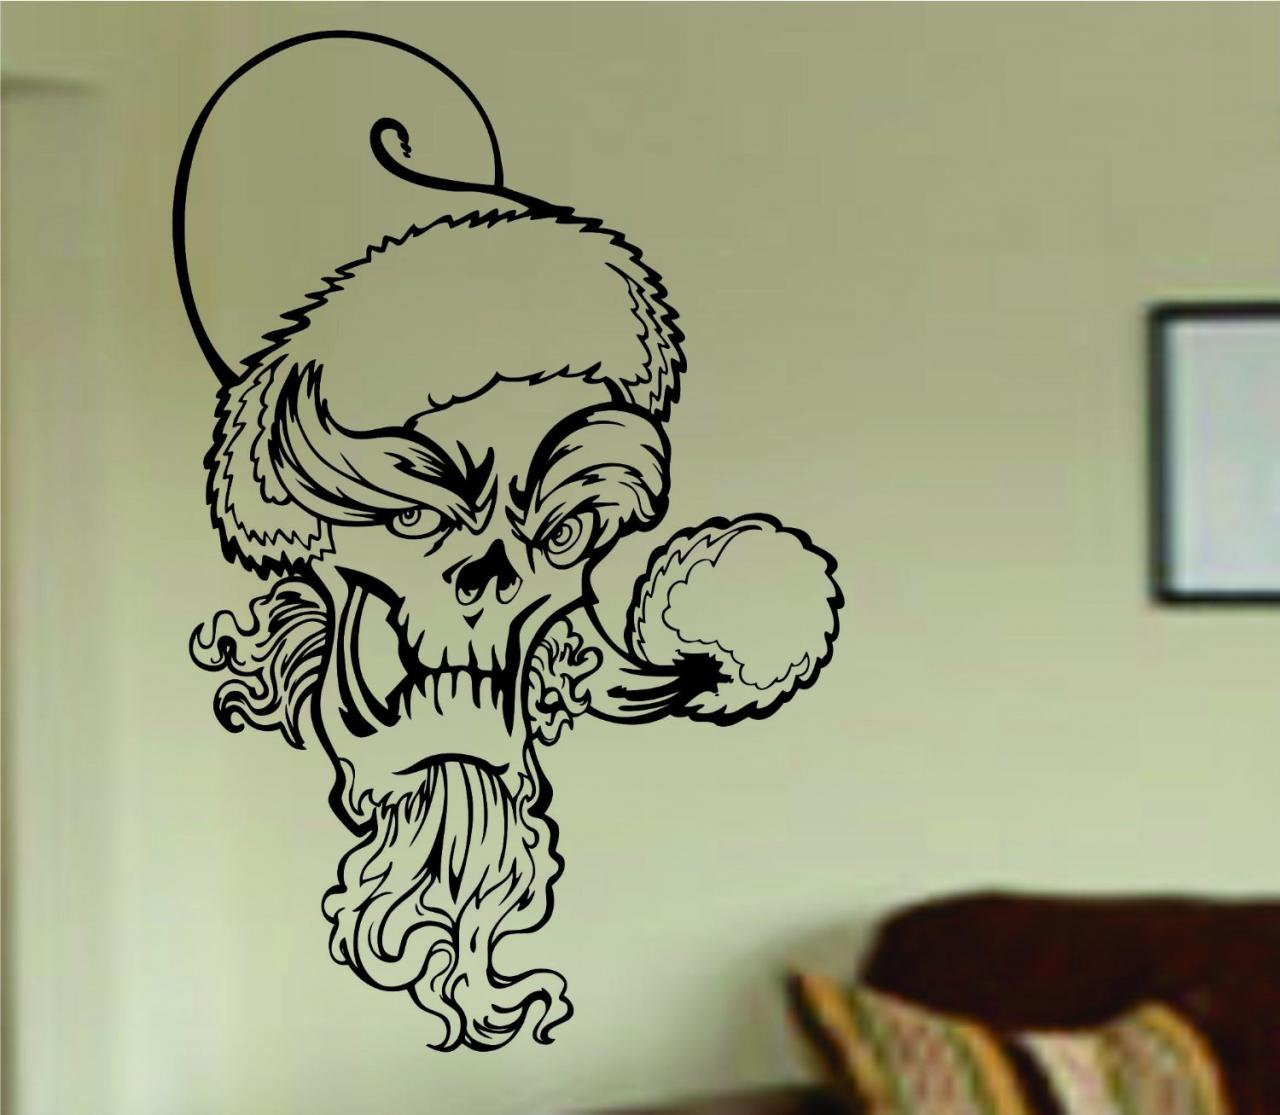 Grinch Skull Wall Vinyl Decal Sticker Art Graphic Sticker